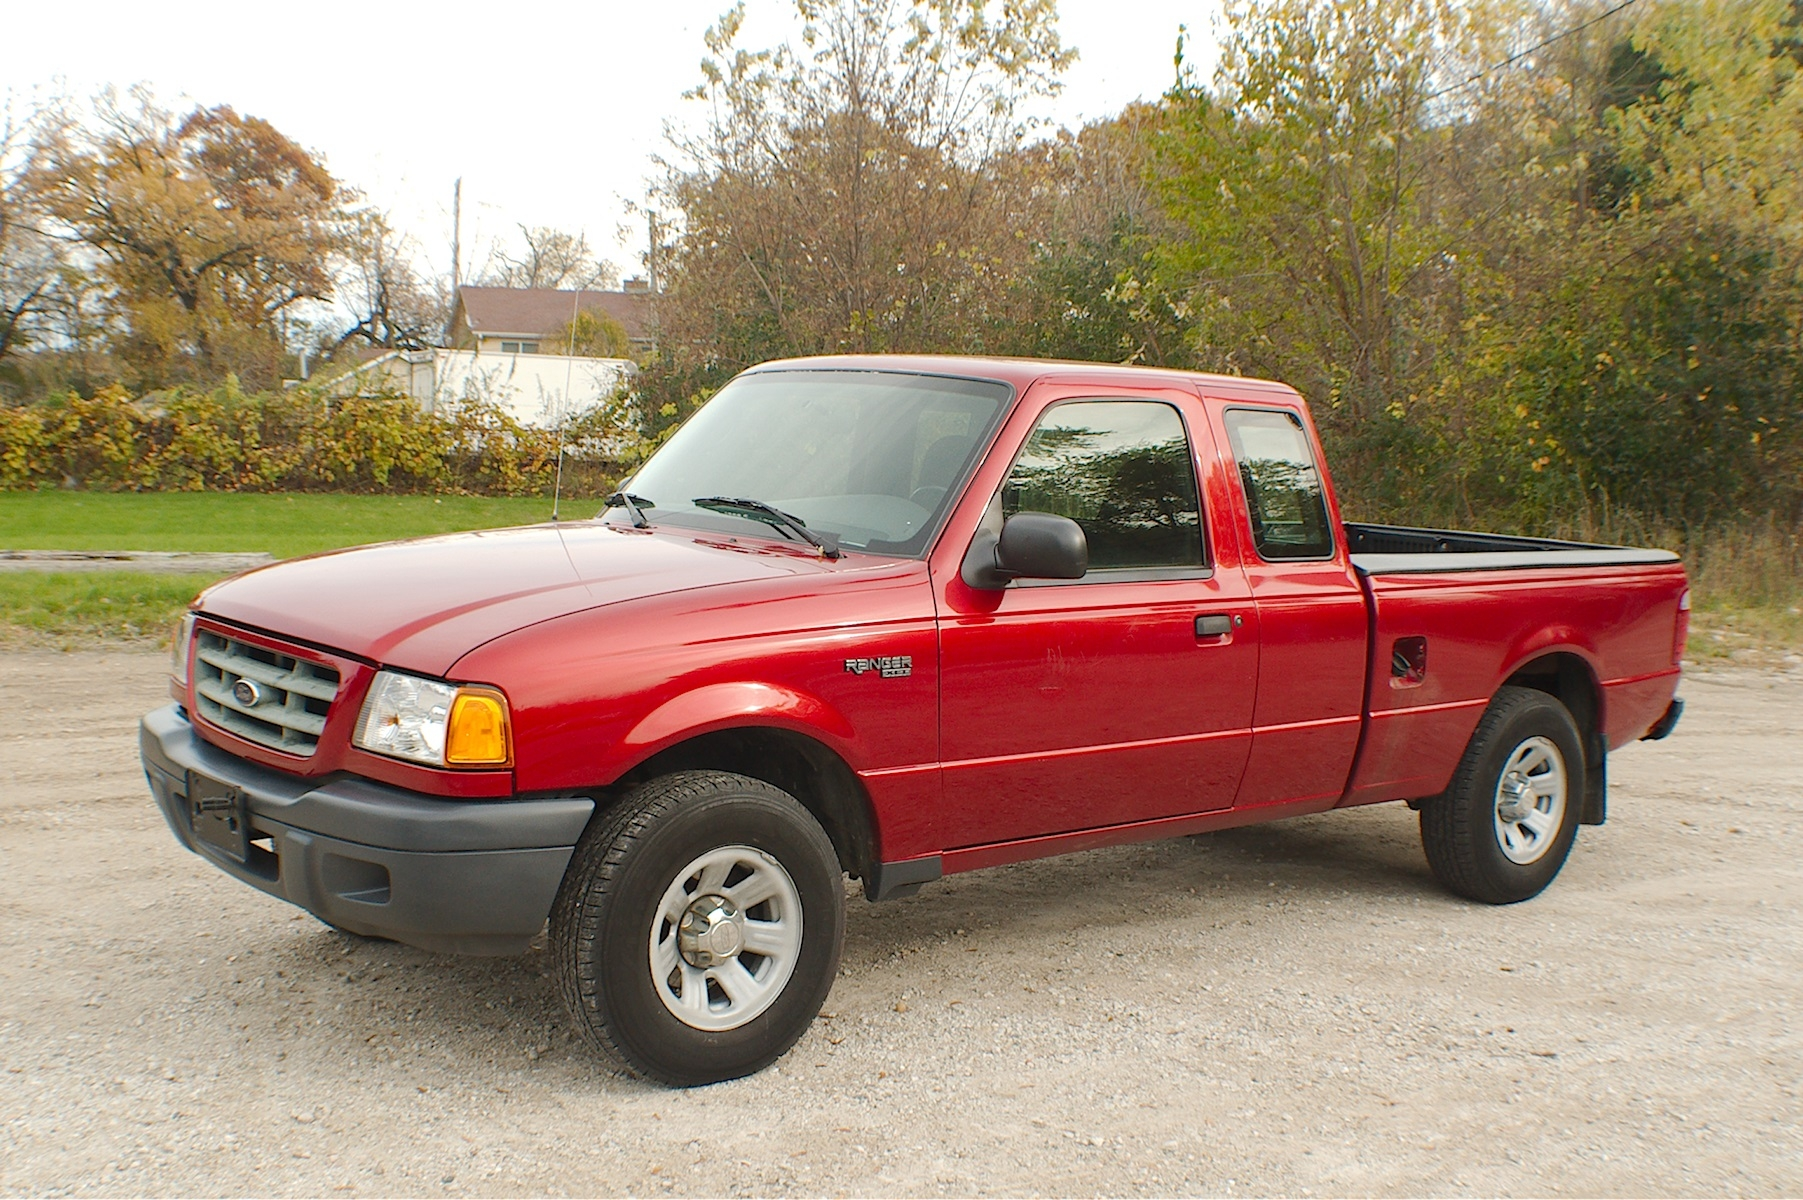 2003 ford ranger xlt red manual used truck sale rh webpageadvertiser com used manual shred trucks for sale used manual transmission duramax truck for sale